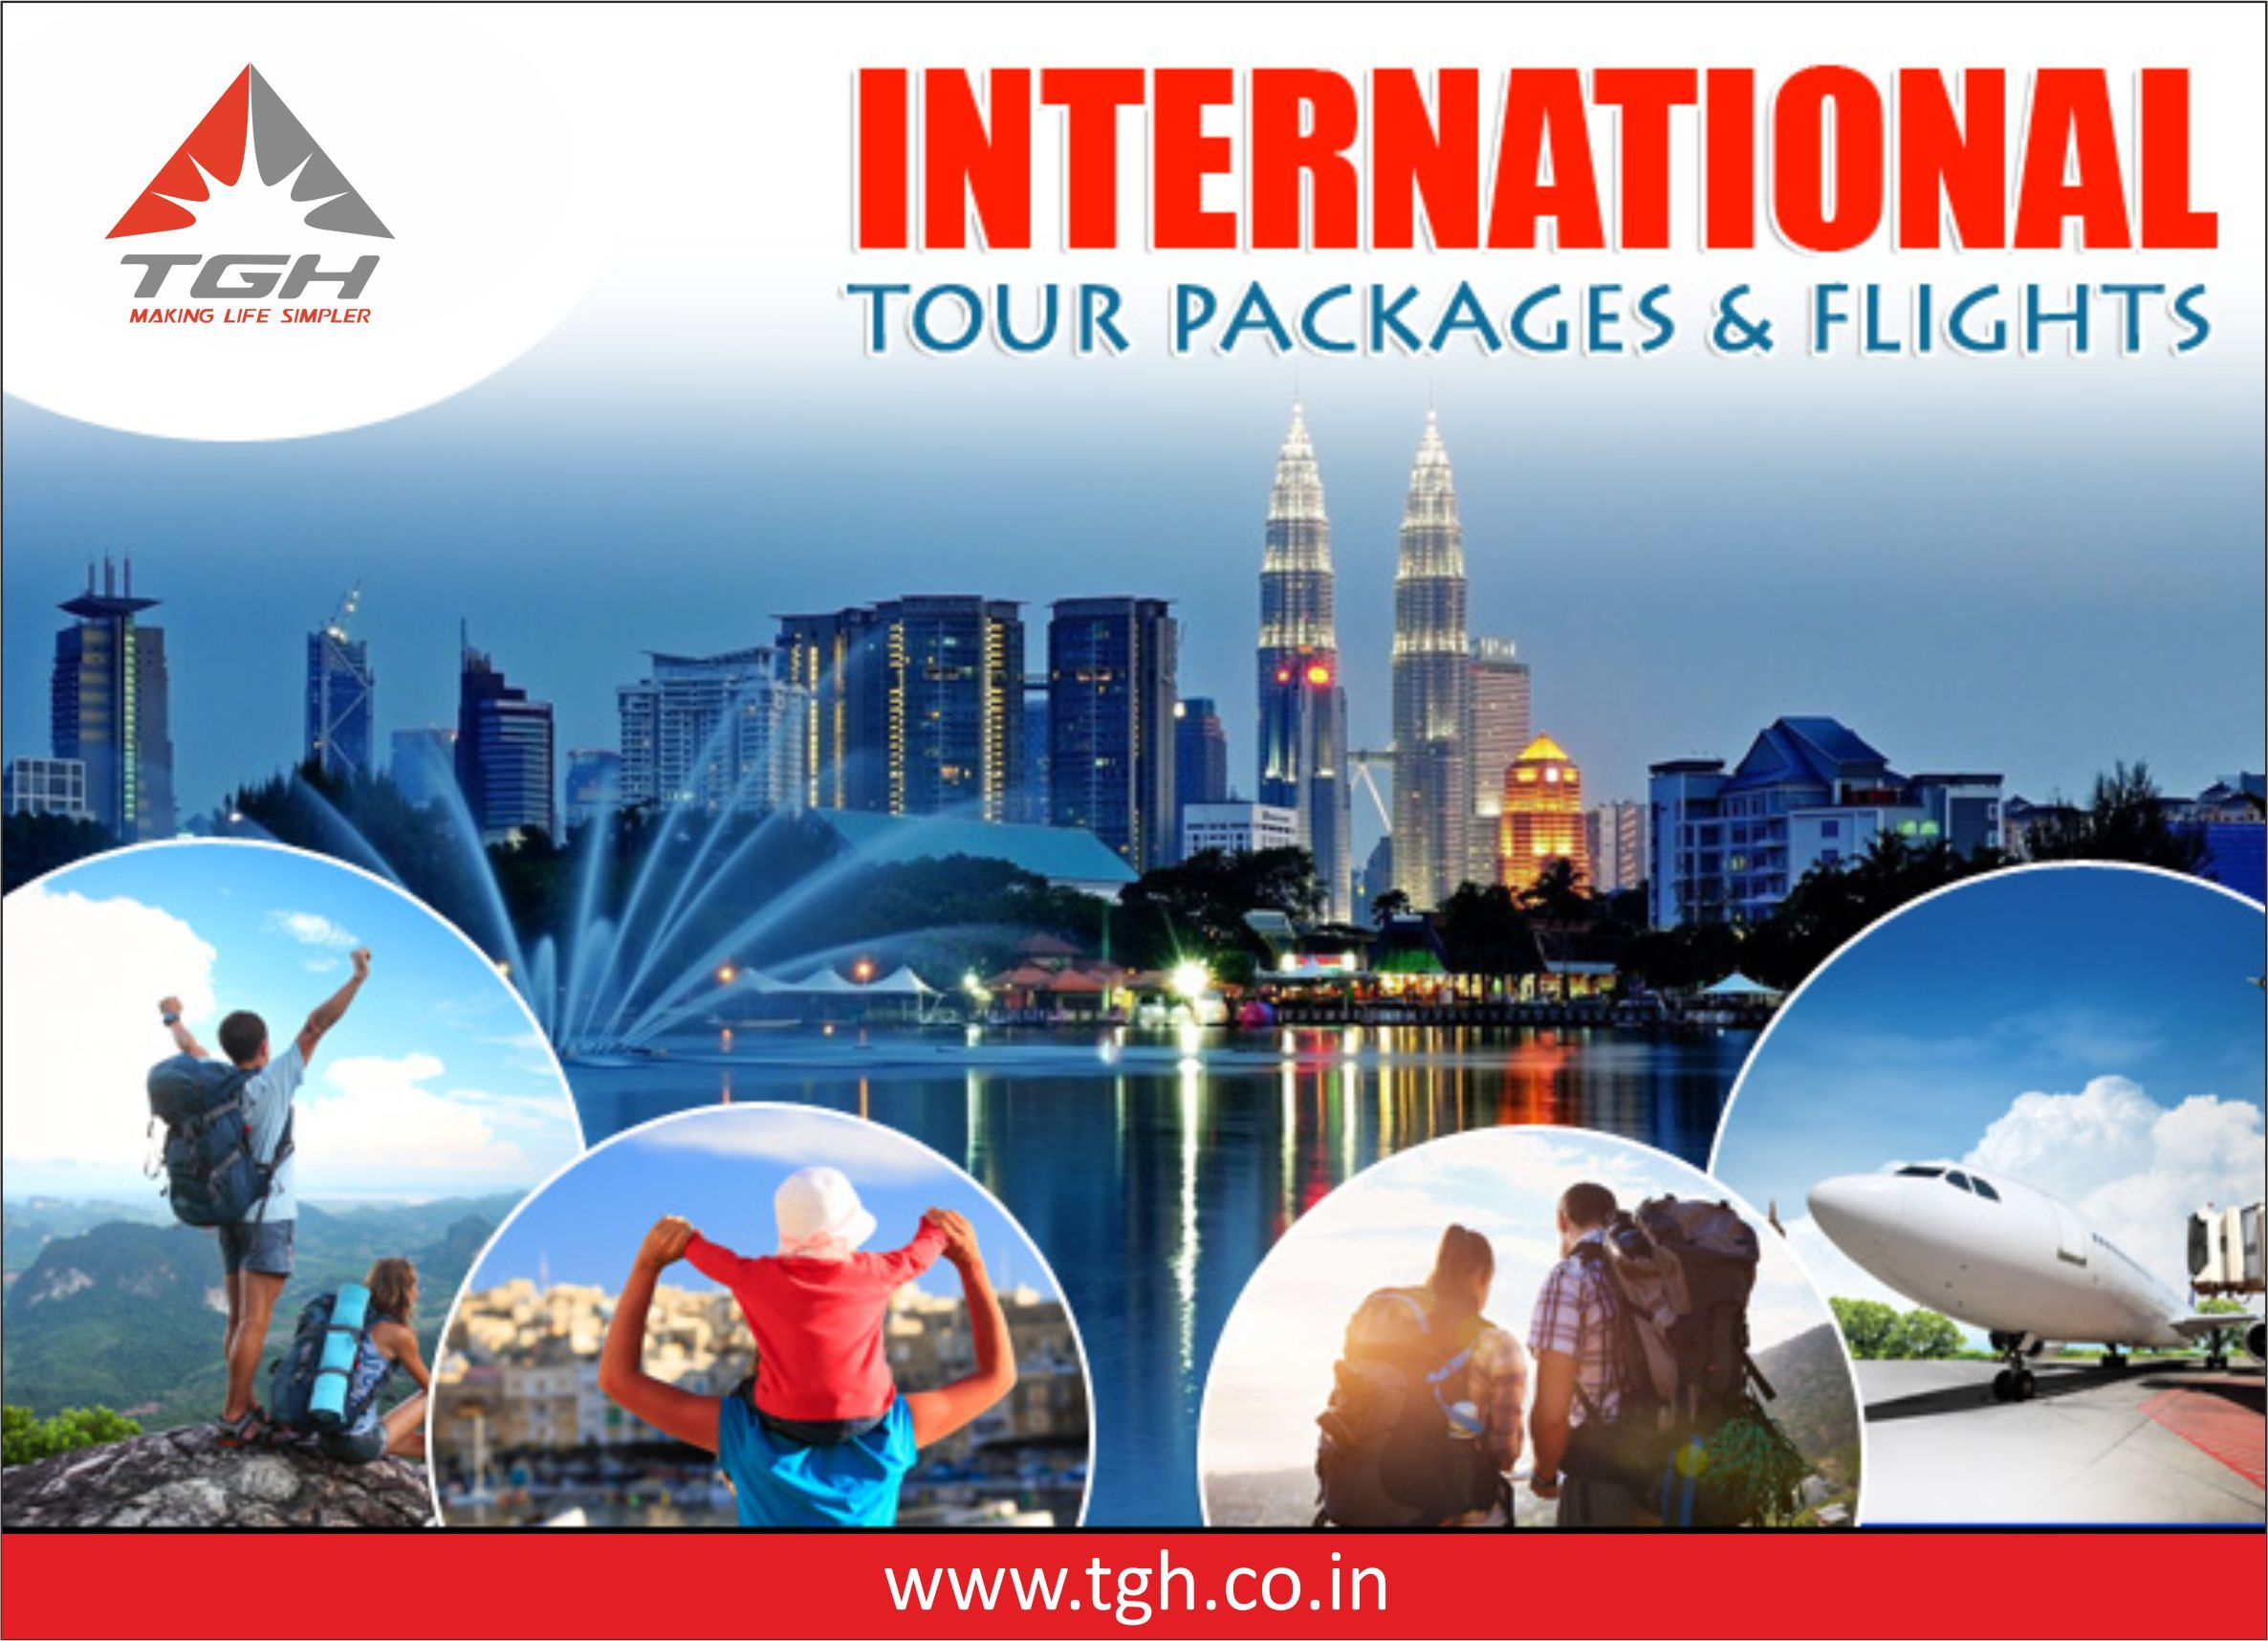 TGH Offers best Deals on International Tour packages